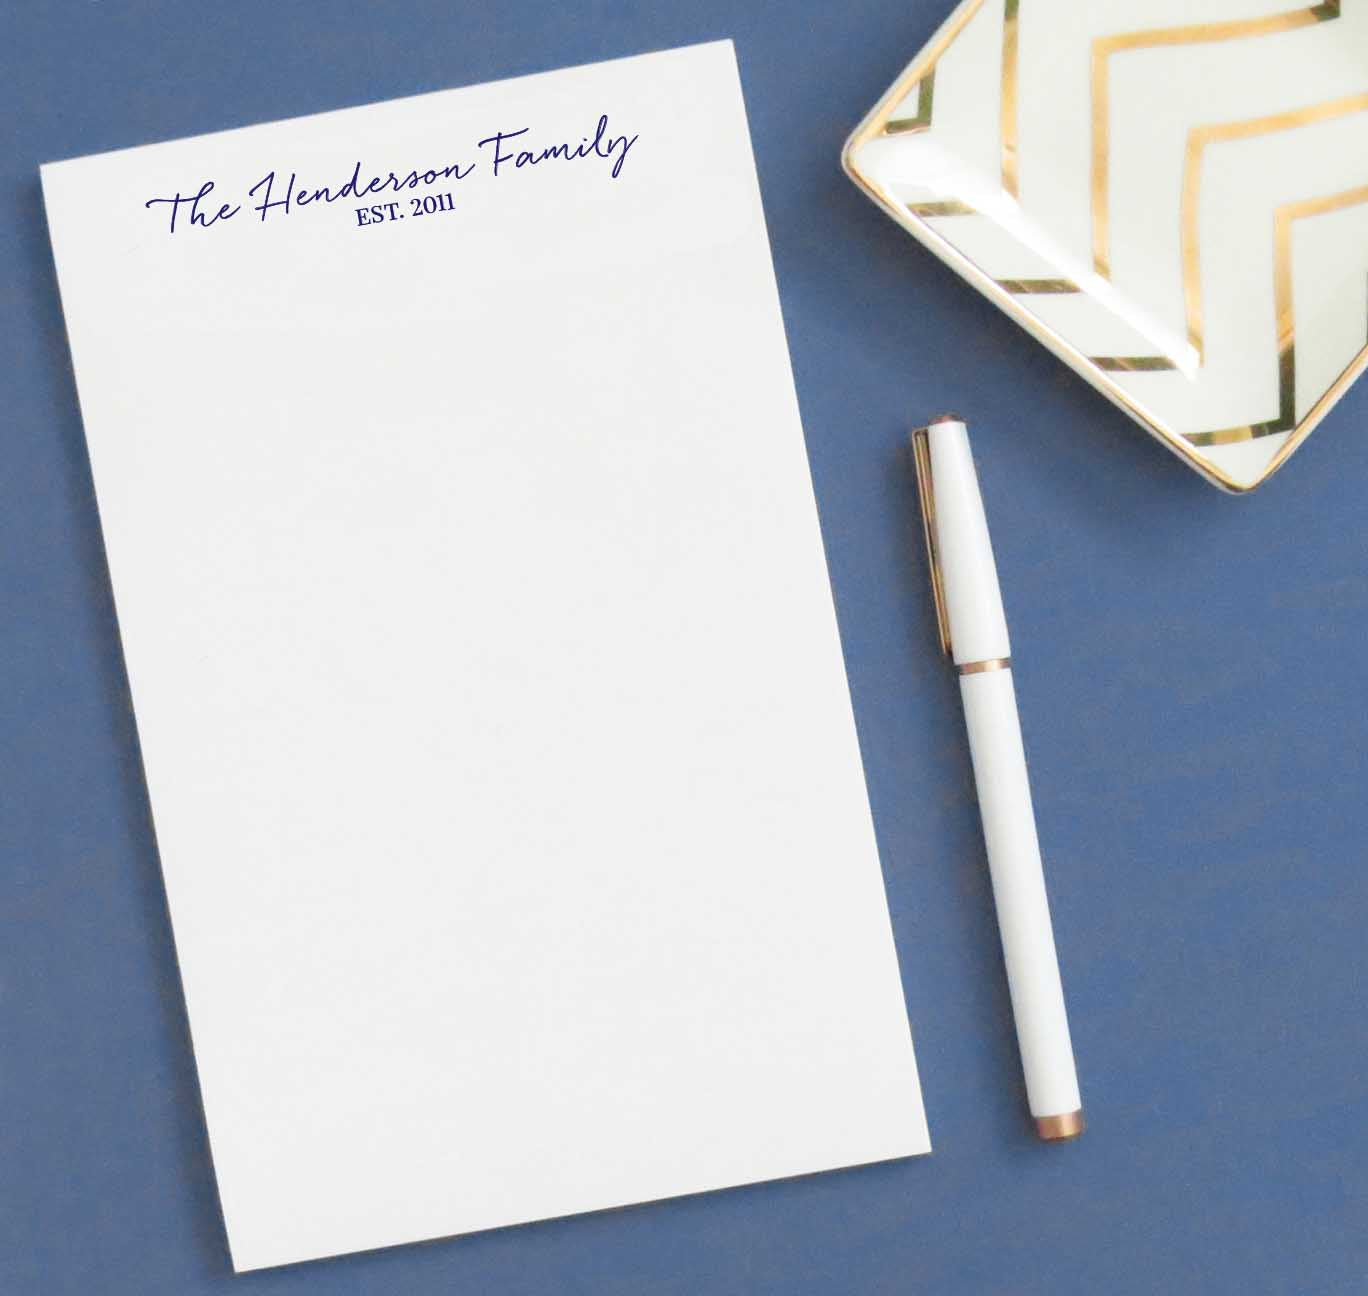 NP089 year established family notepads personalized simple stationary paper